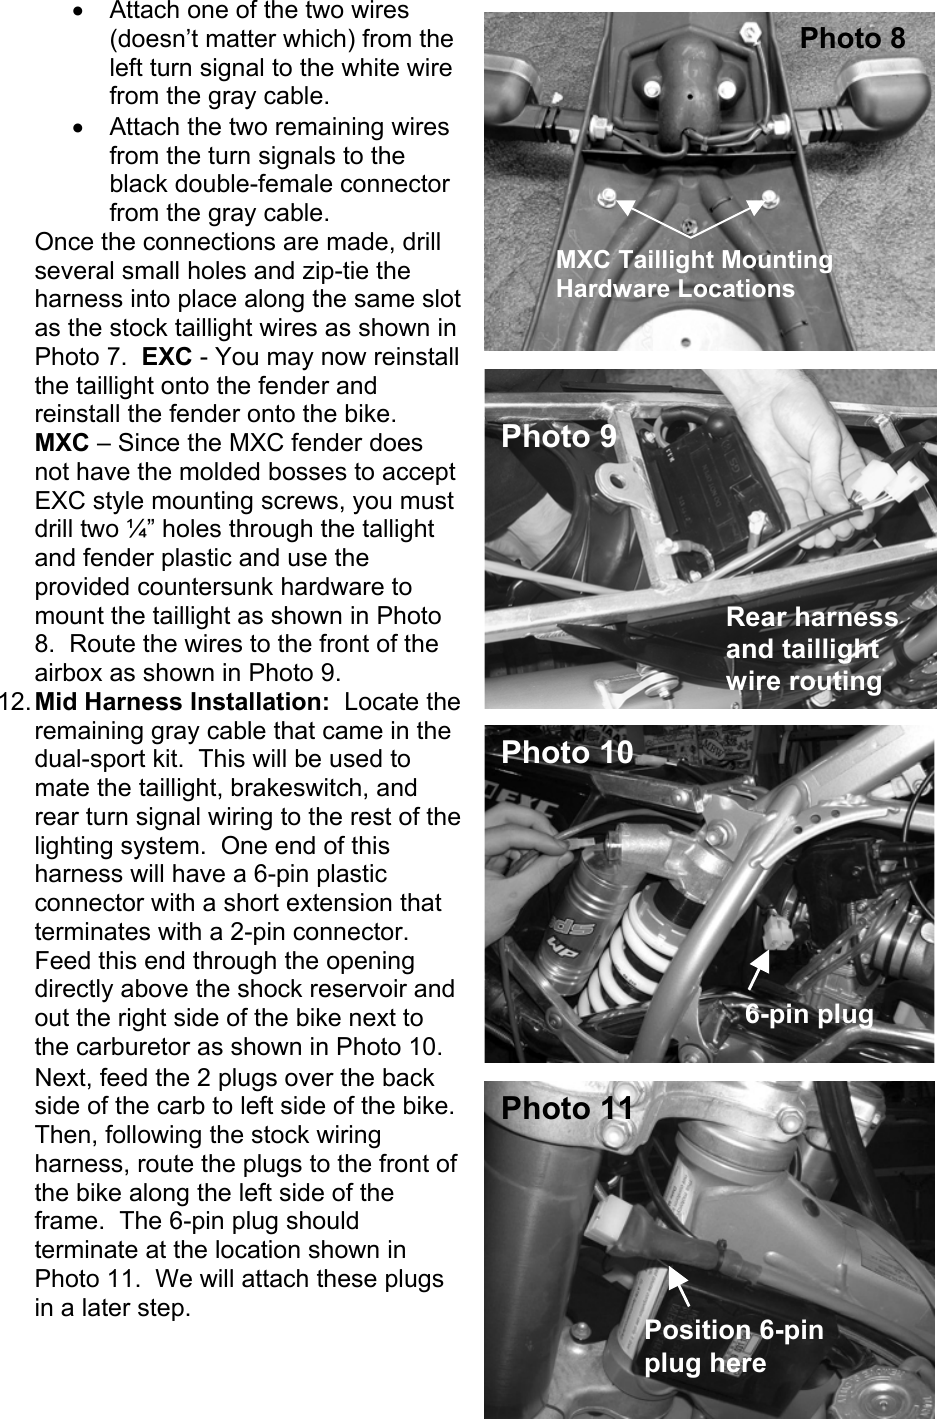 Ktm Dual Sport Kit Installation Manual 04 450 525 Exc User To The Wiring Harness Page 4 Of 10